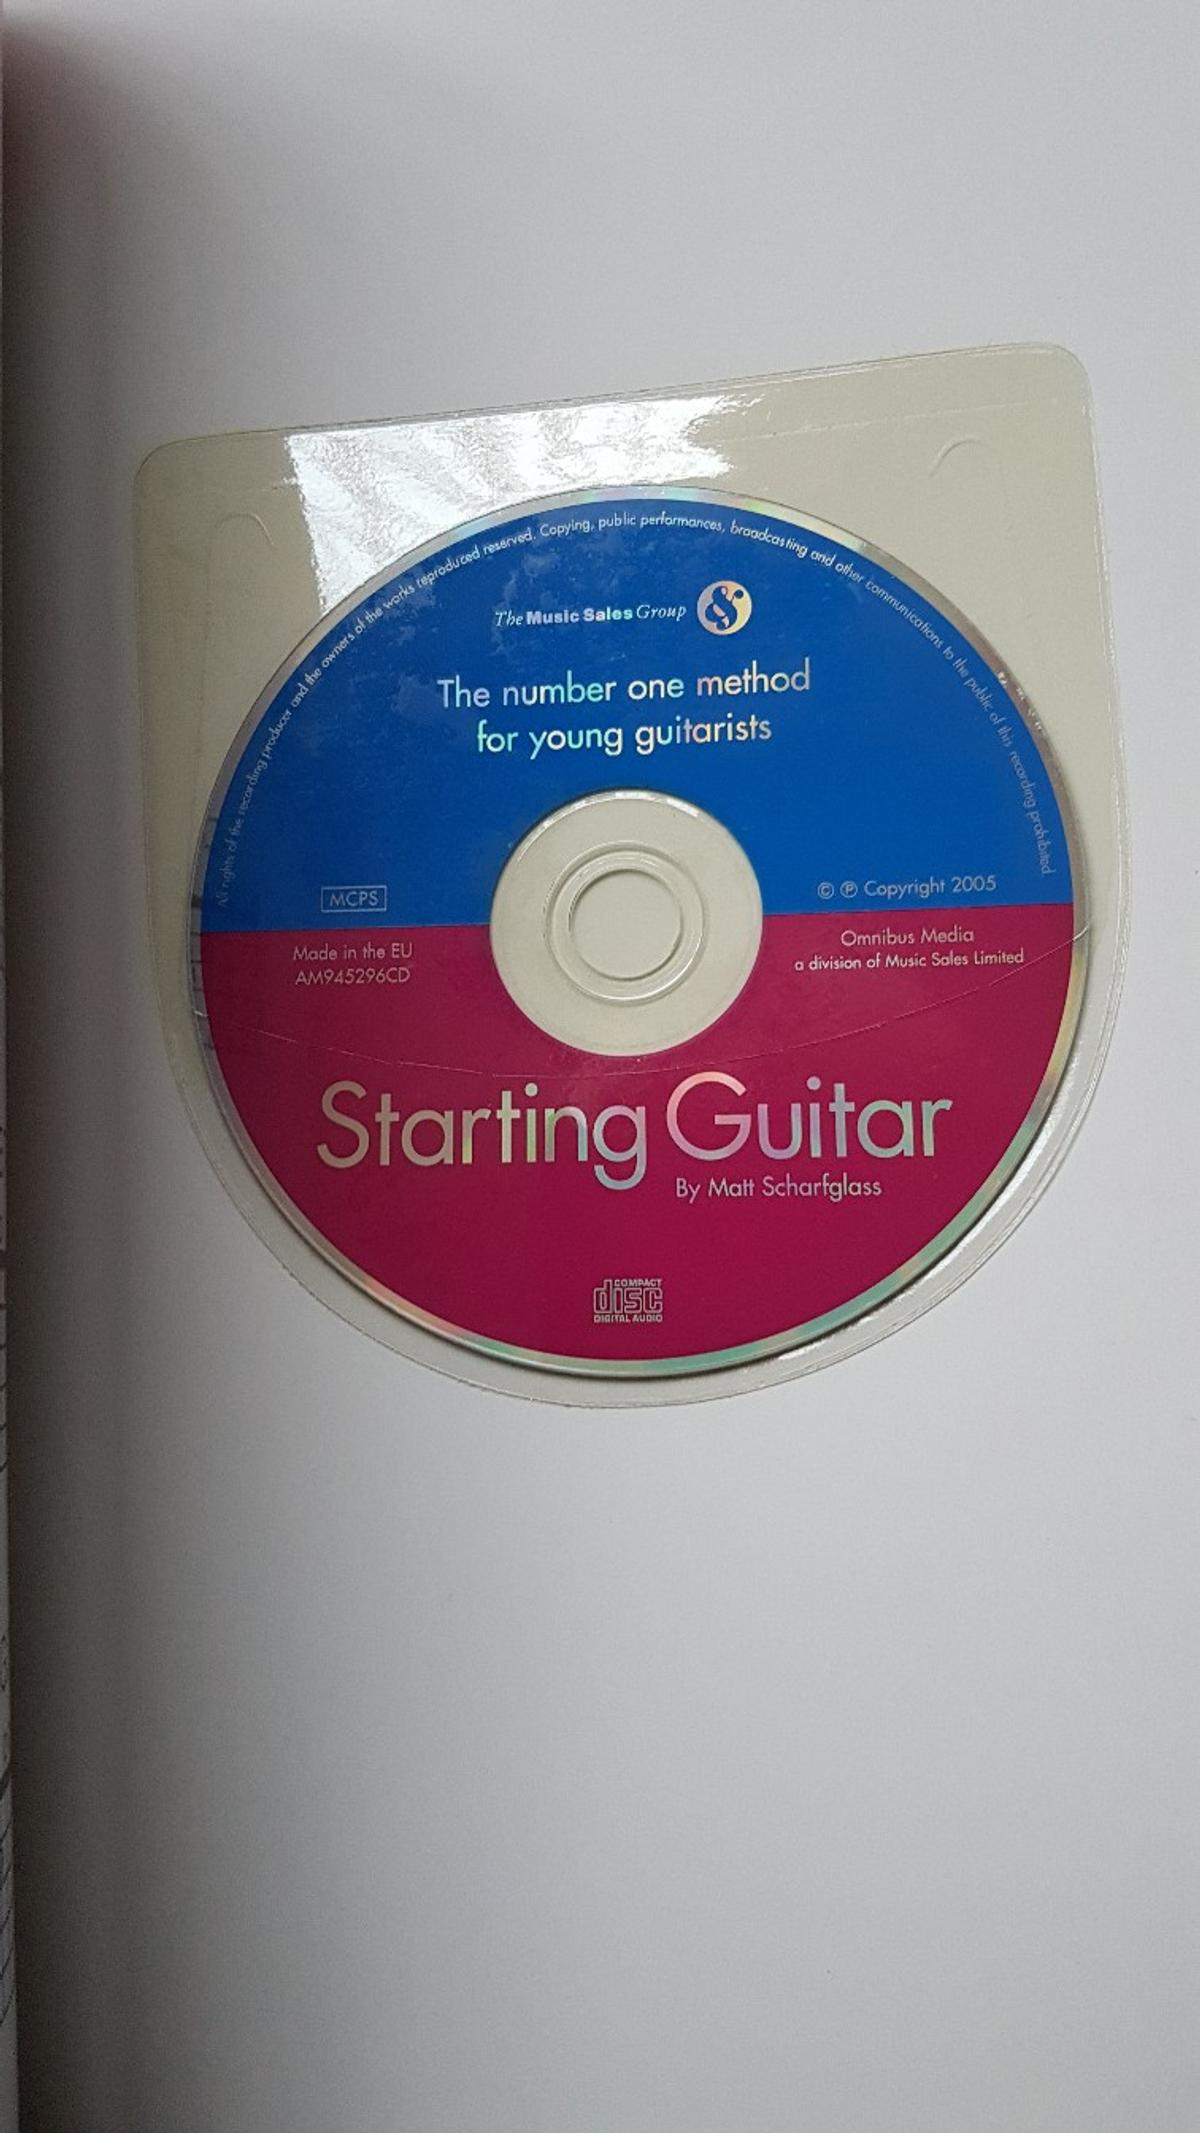 Learn guitar books x 2 in NG10 Erewash for £8 00 for sale